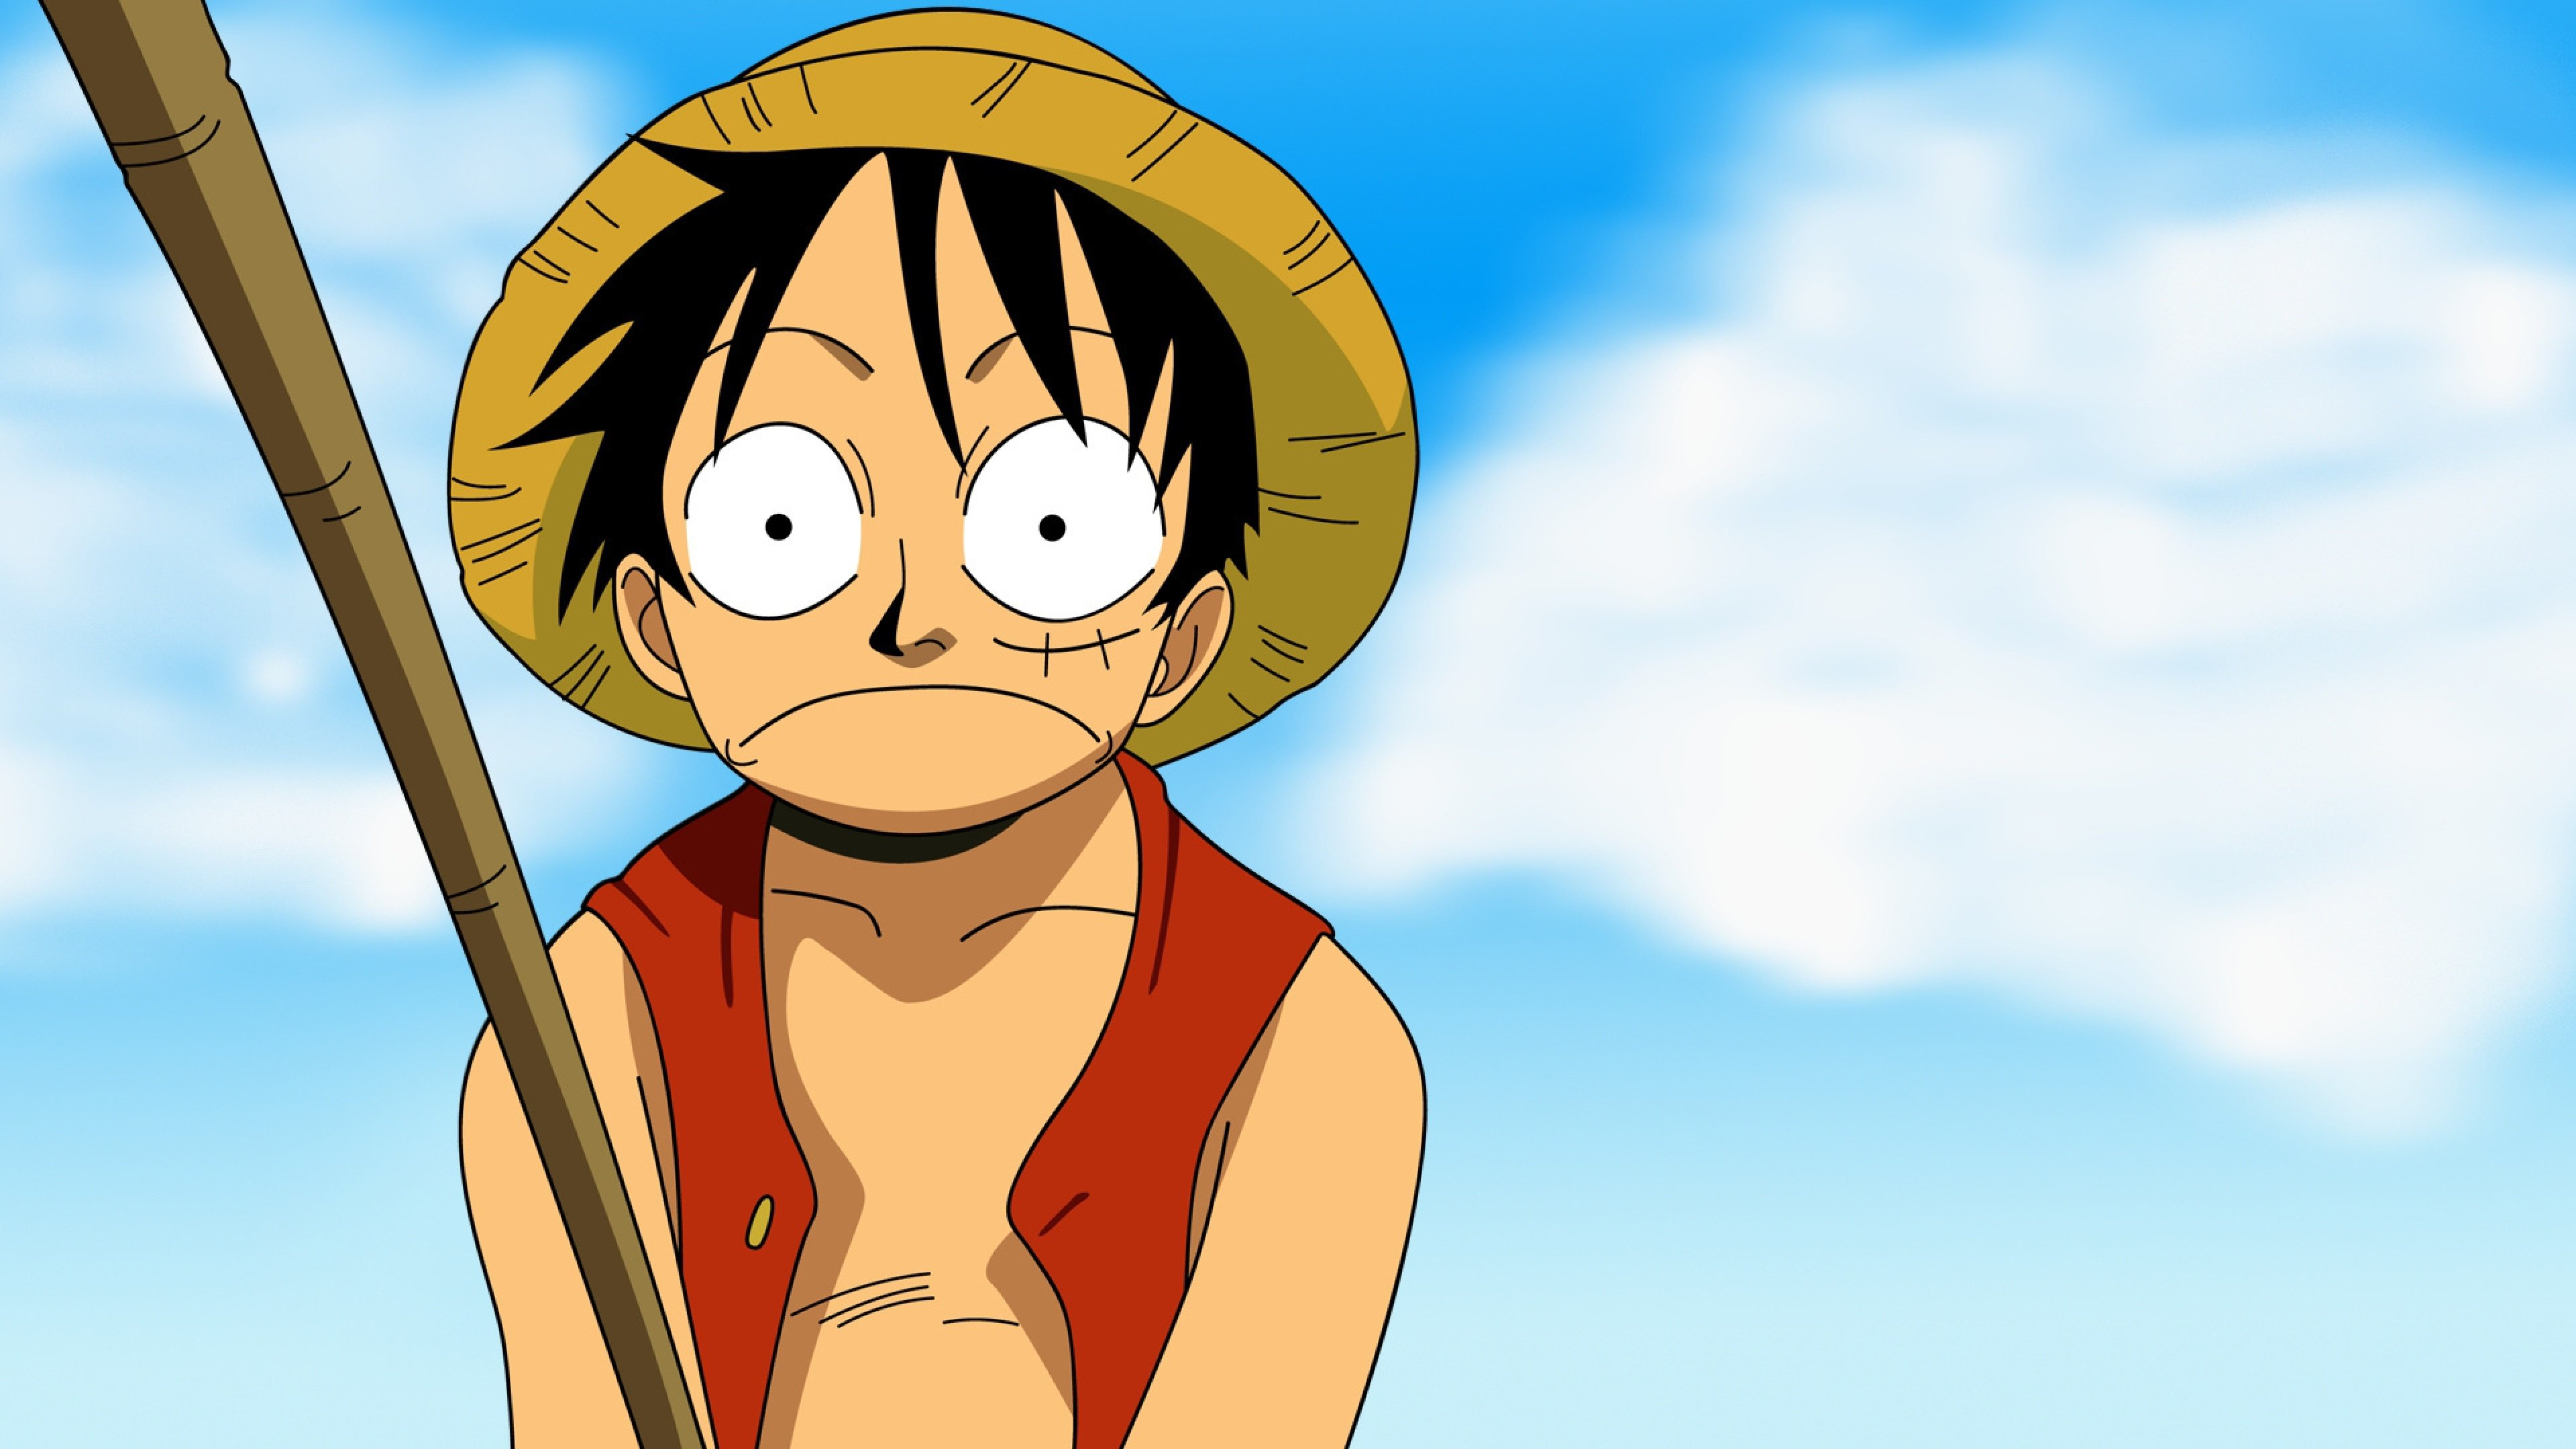 3840x2160 One piece Embarrassment Boy Hat Fishing Sky Wallpaper 3840x2160